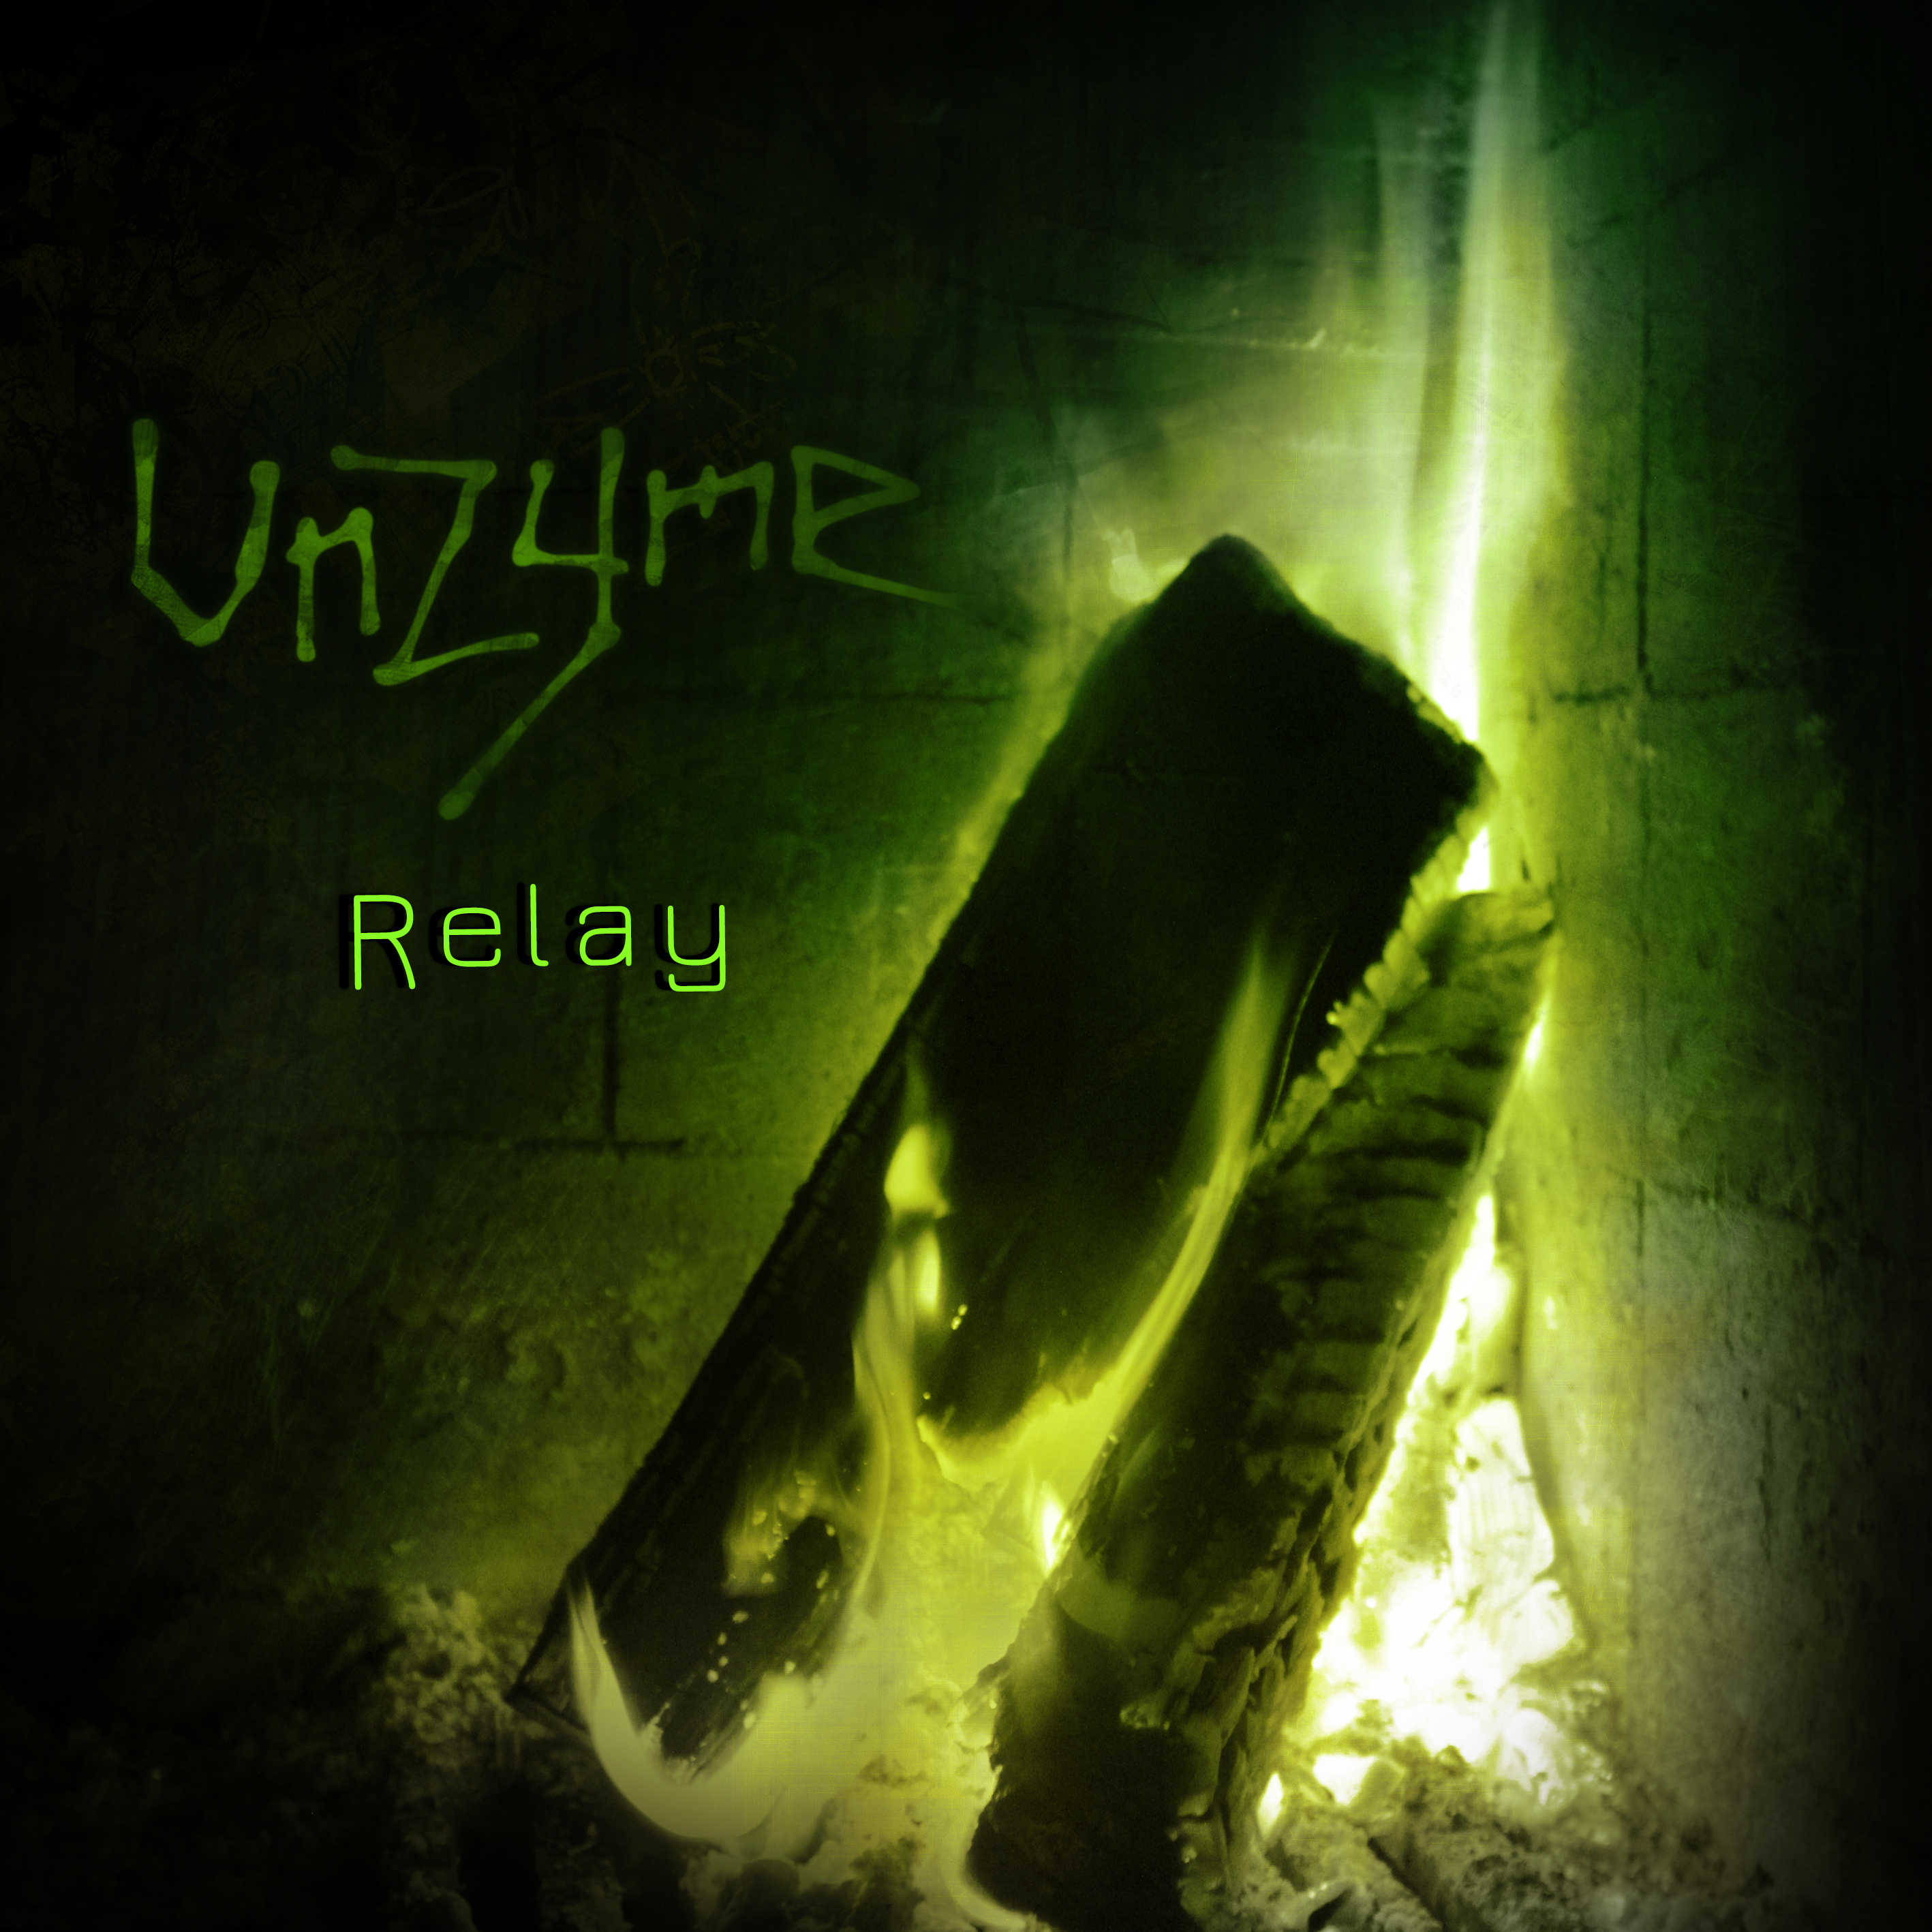 Relay released